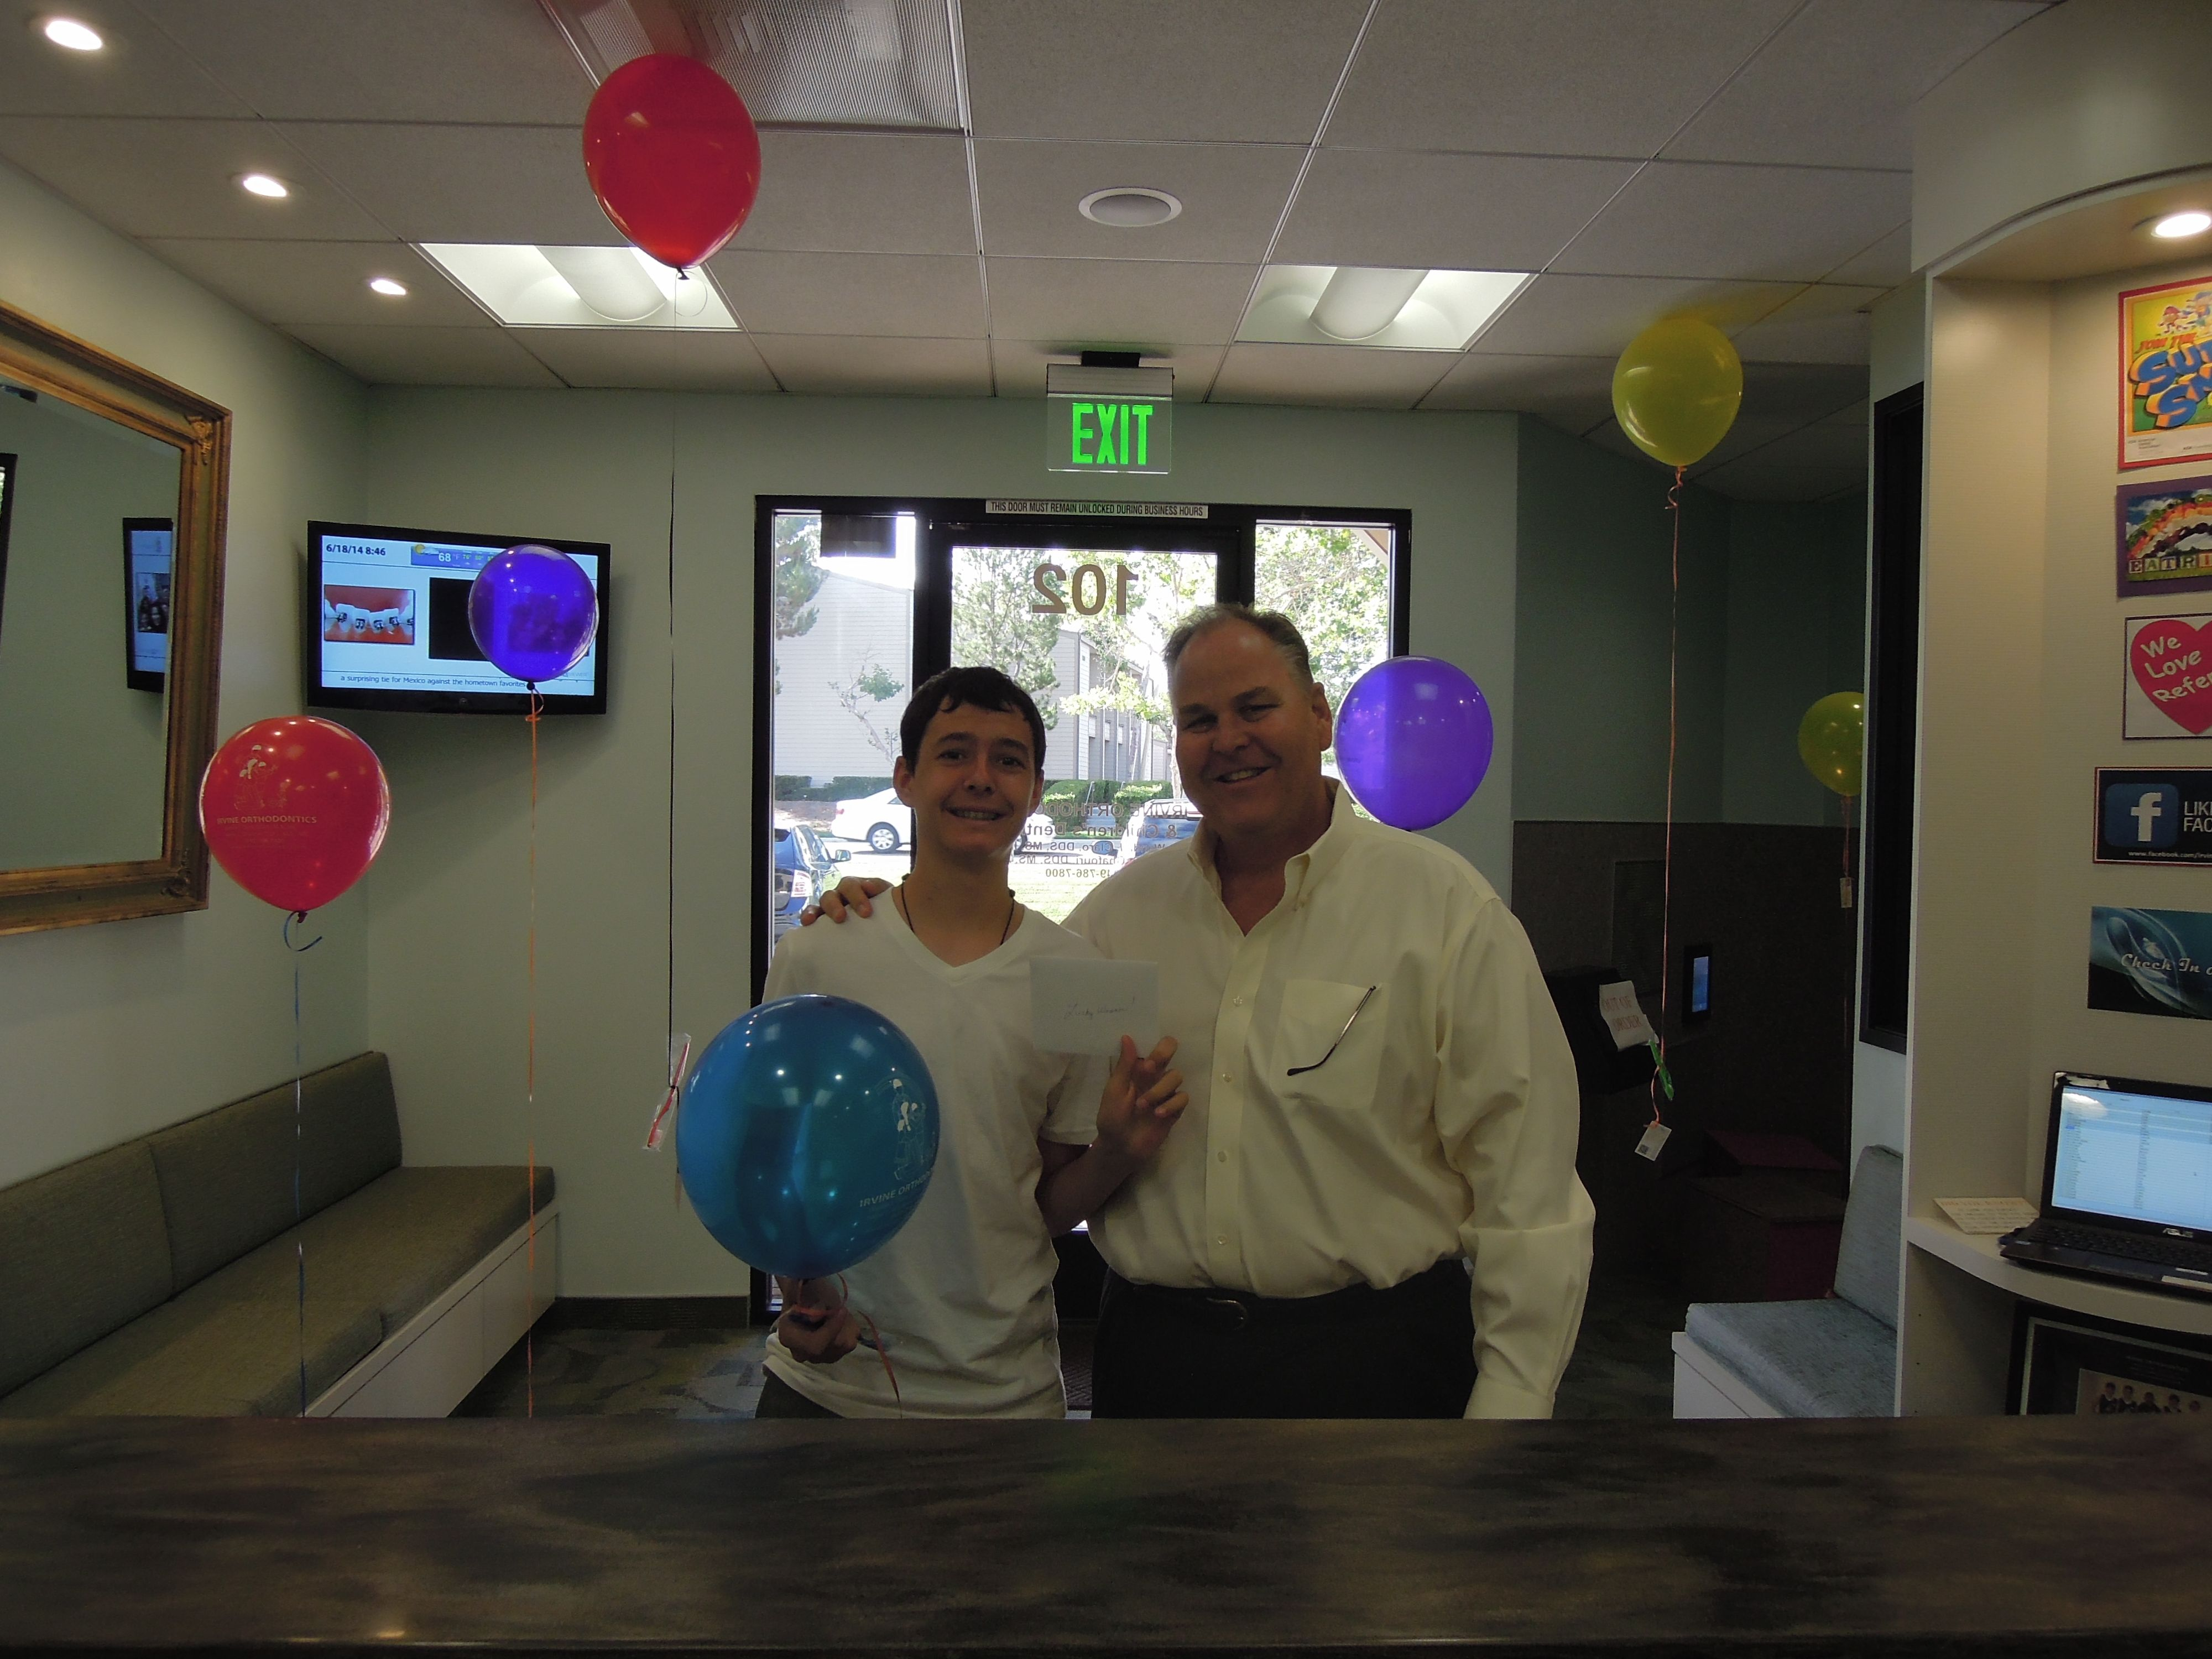 Jake and his dad had a great time on Balloon Day.. Especially after winning one of our Gift Cards :)